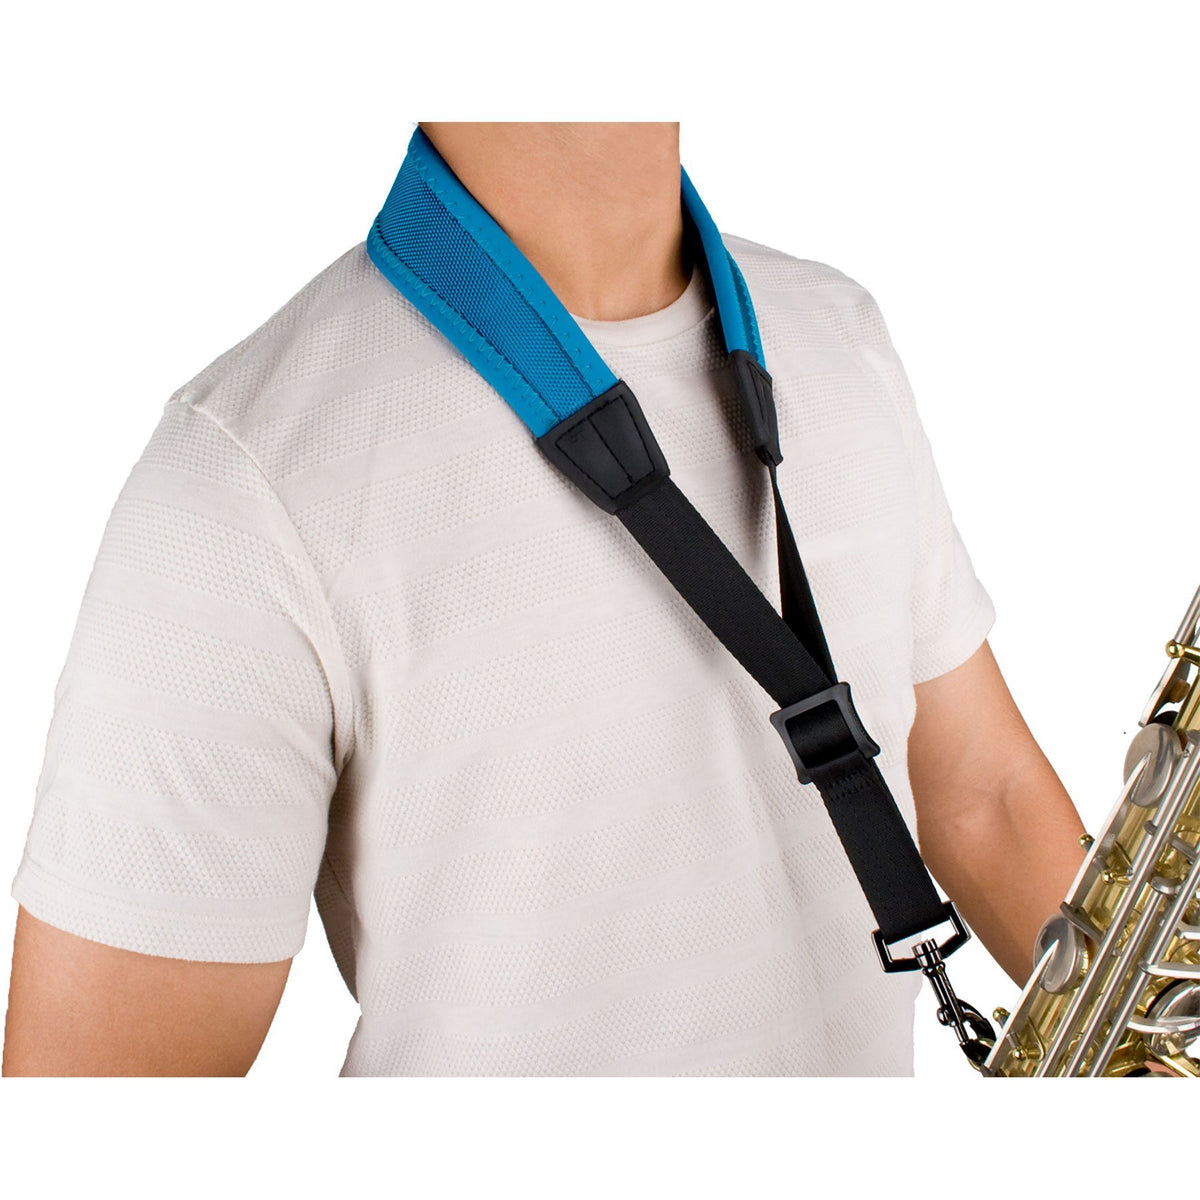 Protec - 22″ (Regular) Ballistic Neoprene Less-Stress Saxophone Neck Strap-Accessories-Protec-Teal Blue-Music Elements